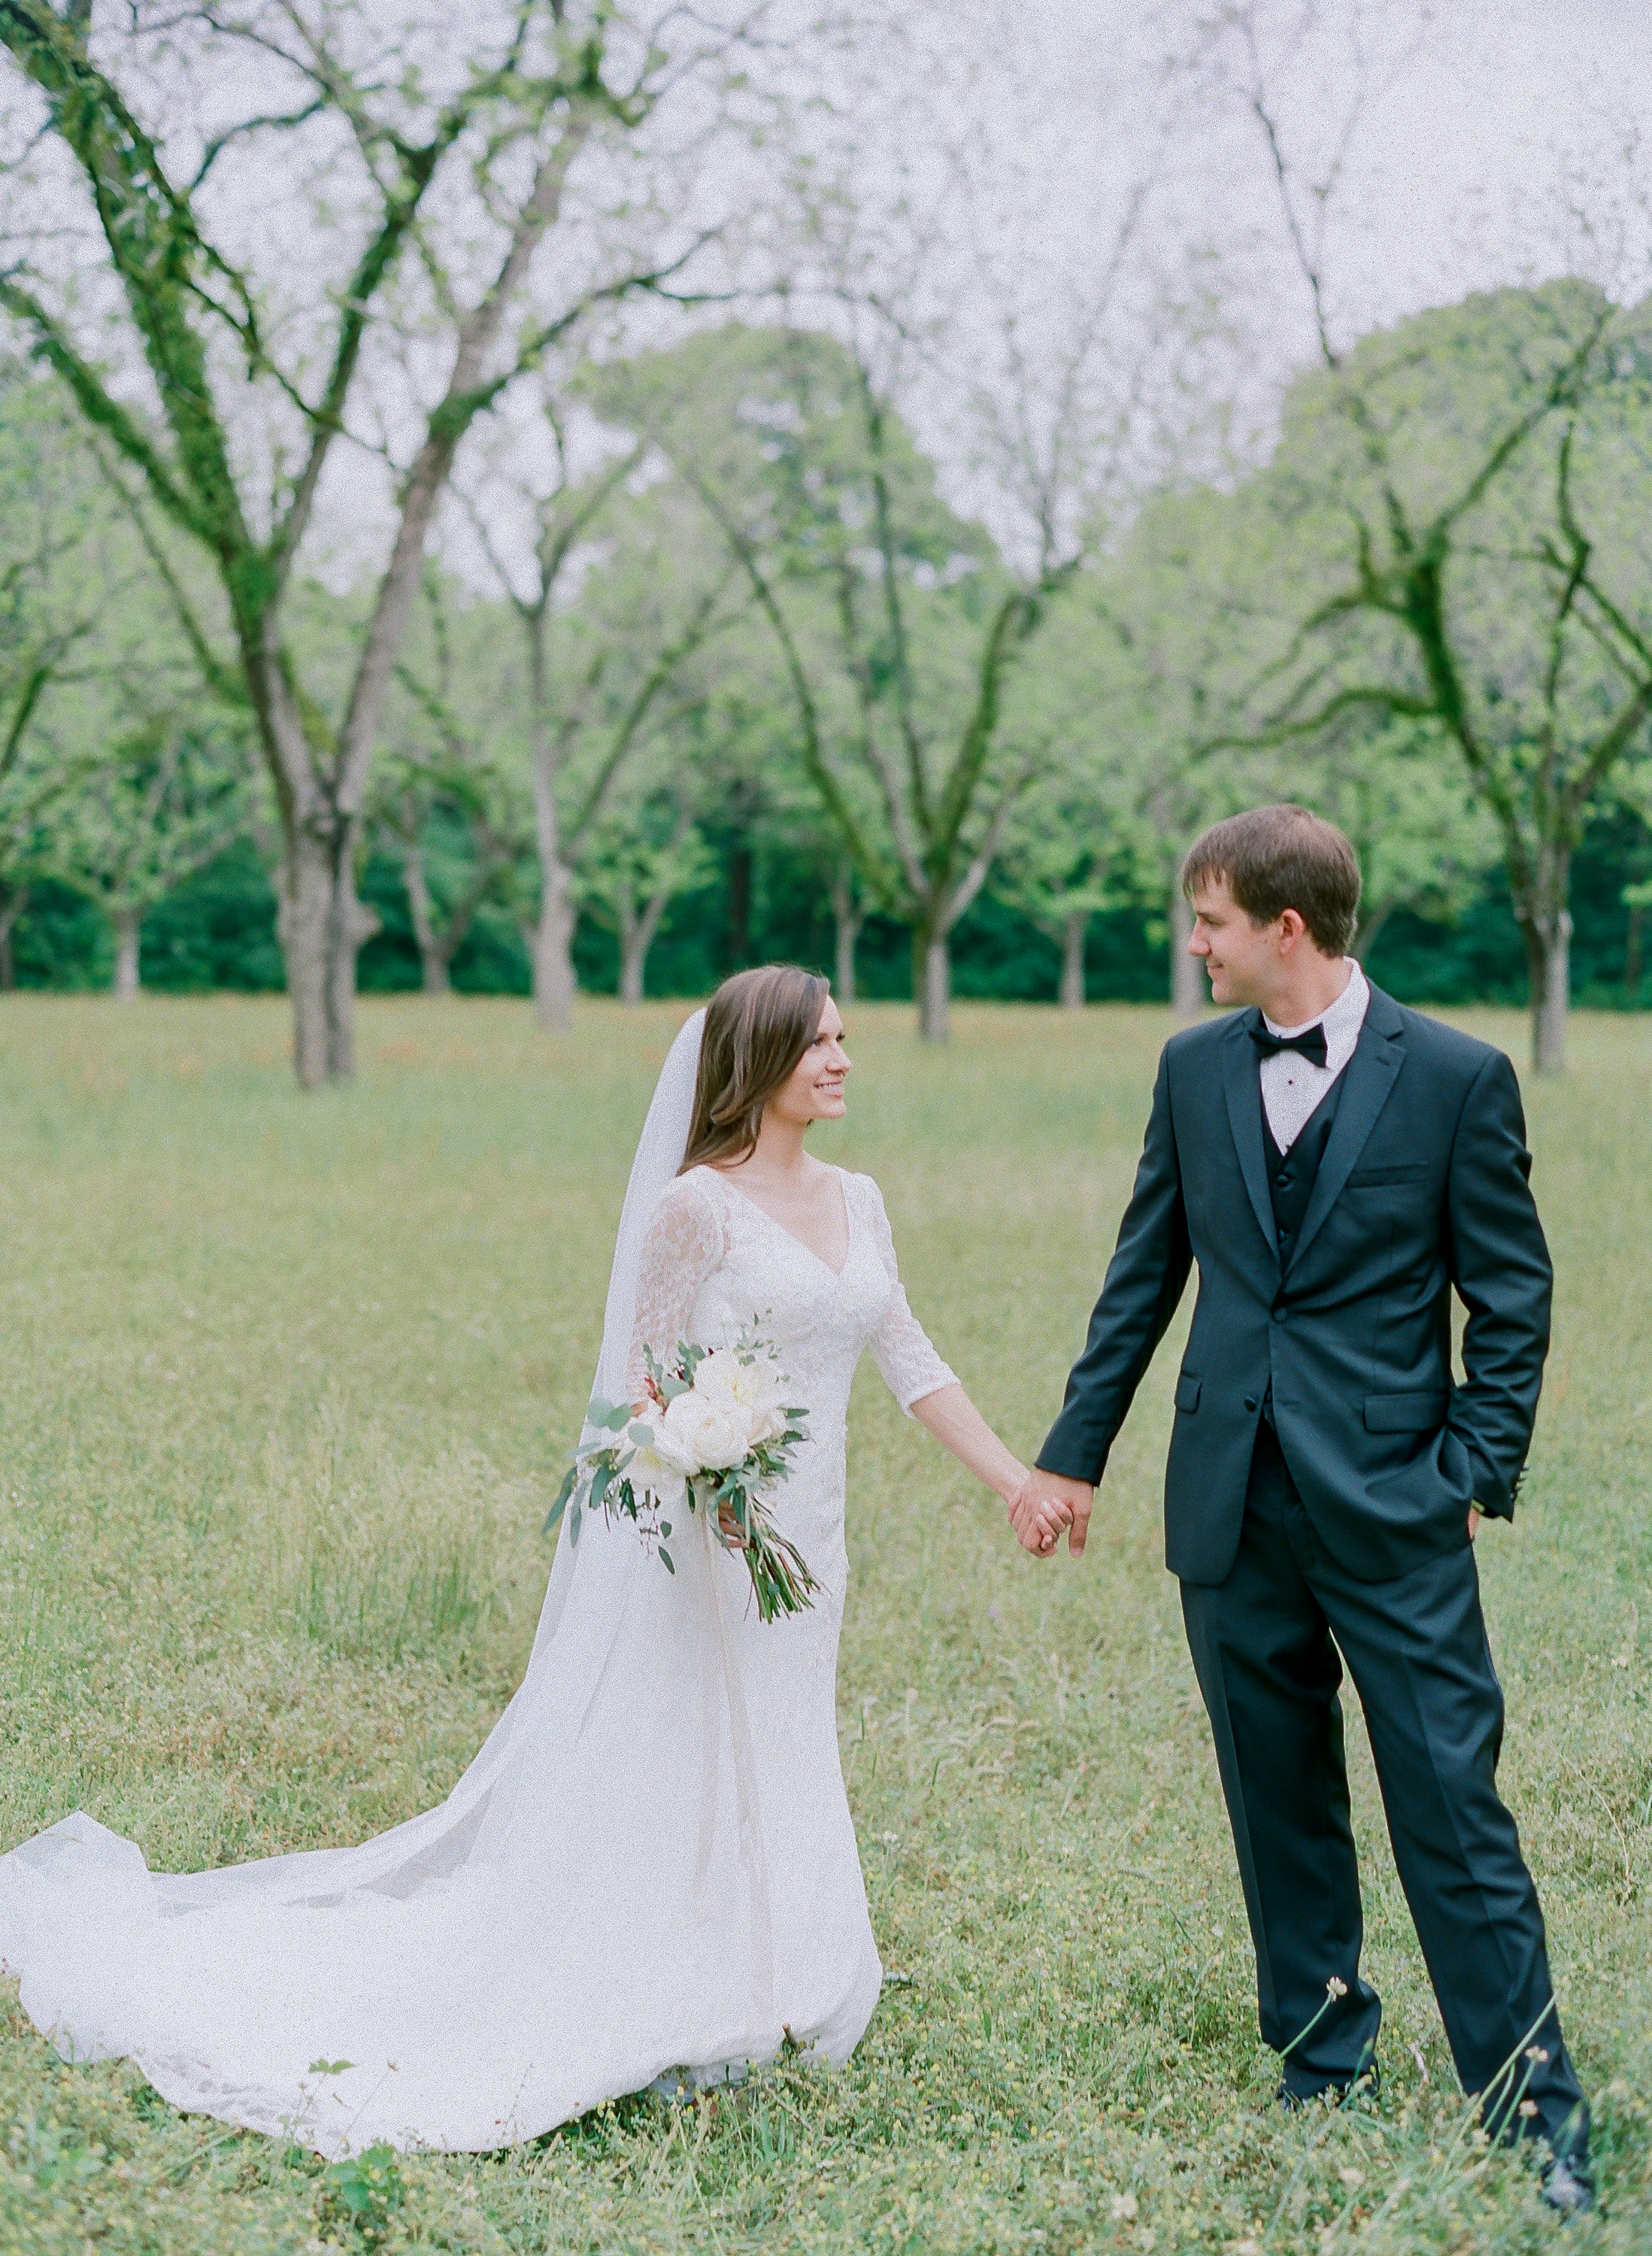 Olive and European inspired wedding | Kaylie B. Poplin Photography | Crestview, Florida Family & Wedding Photographer